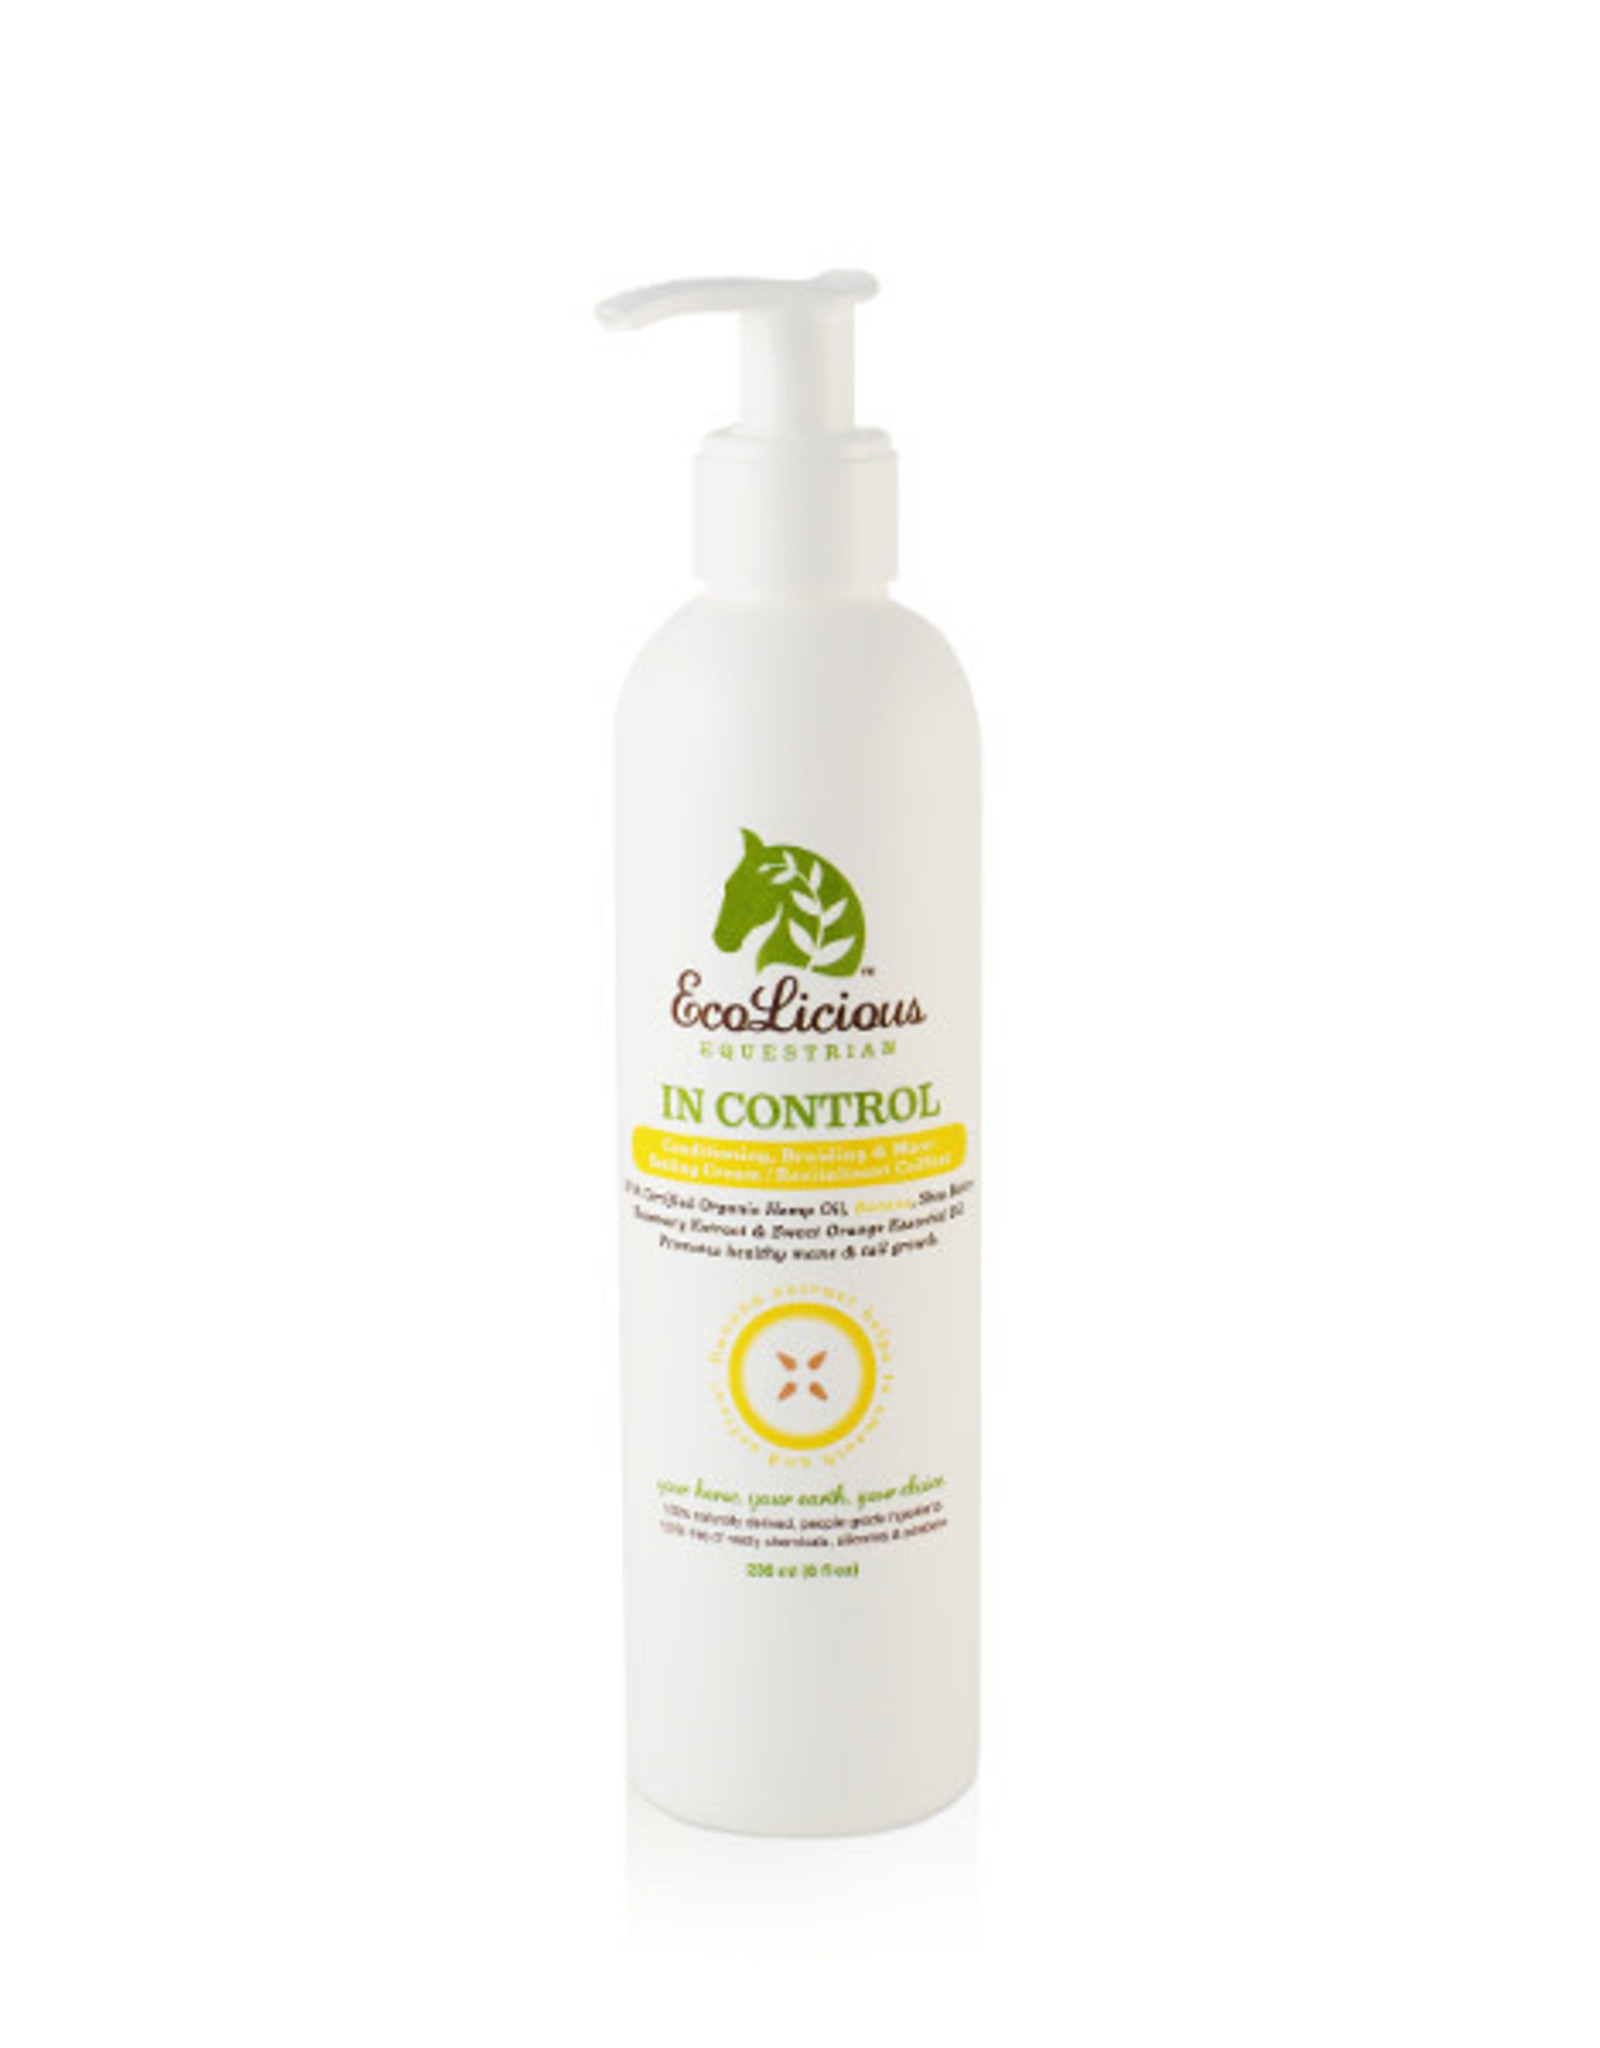 EcoLicious IN CONTROL (CONDITIONING MANE SETTING CREAM)